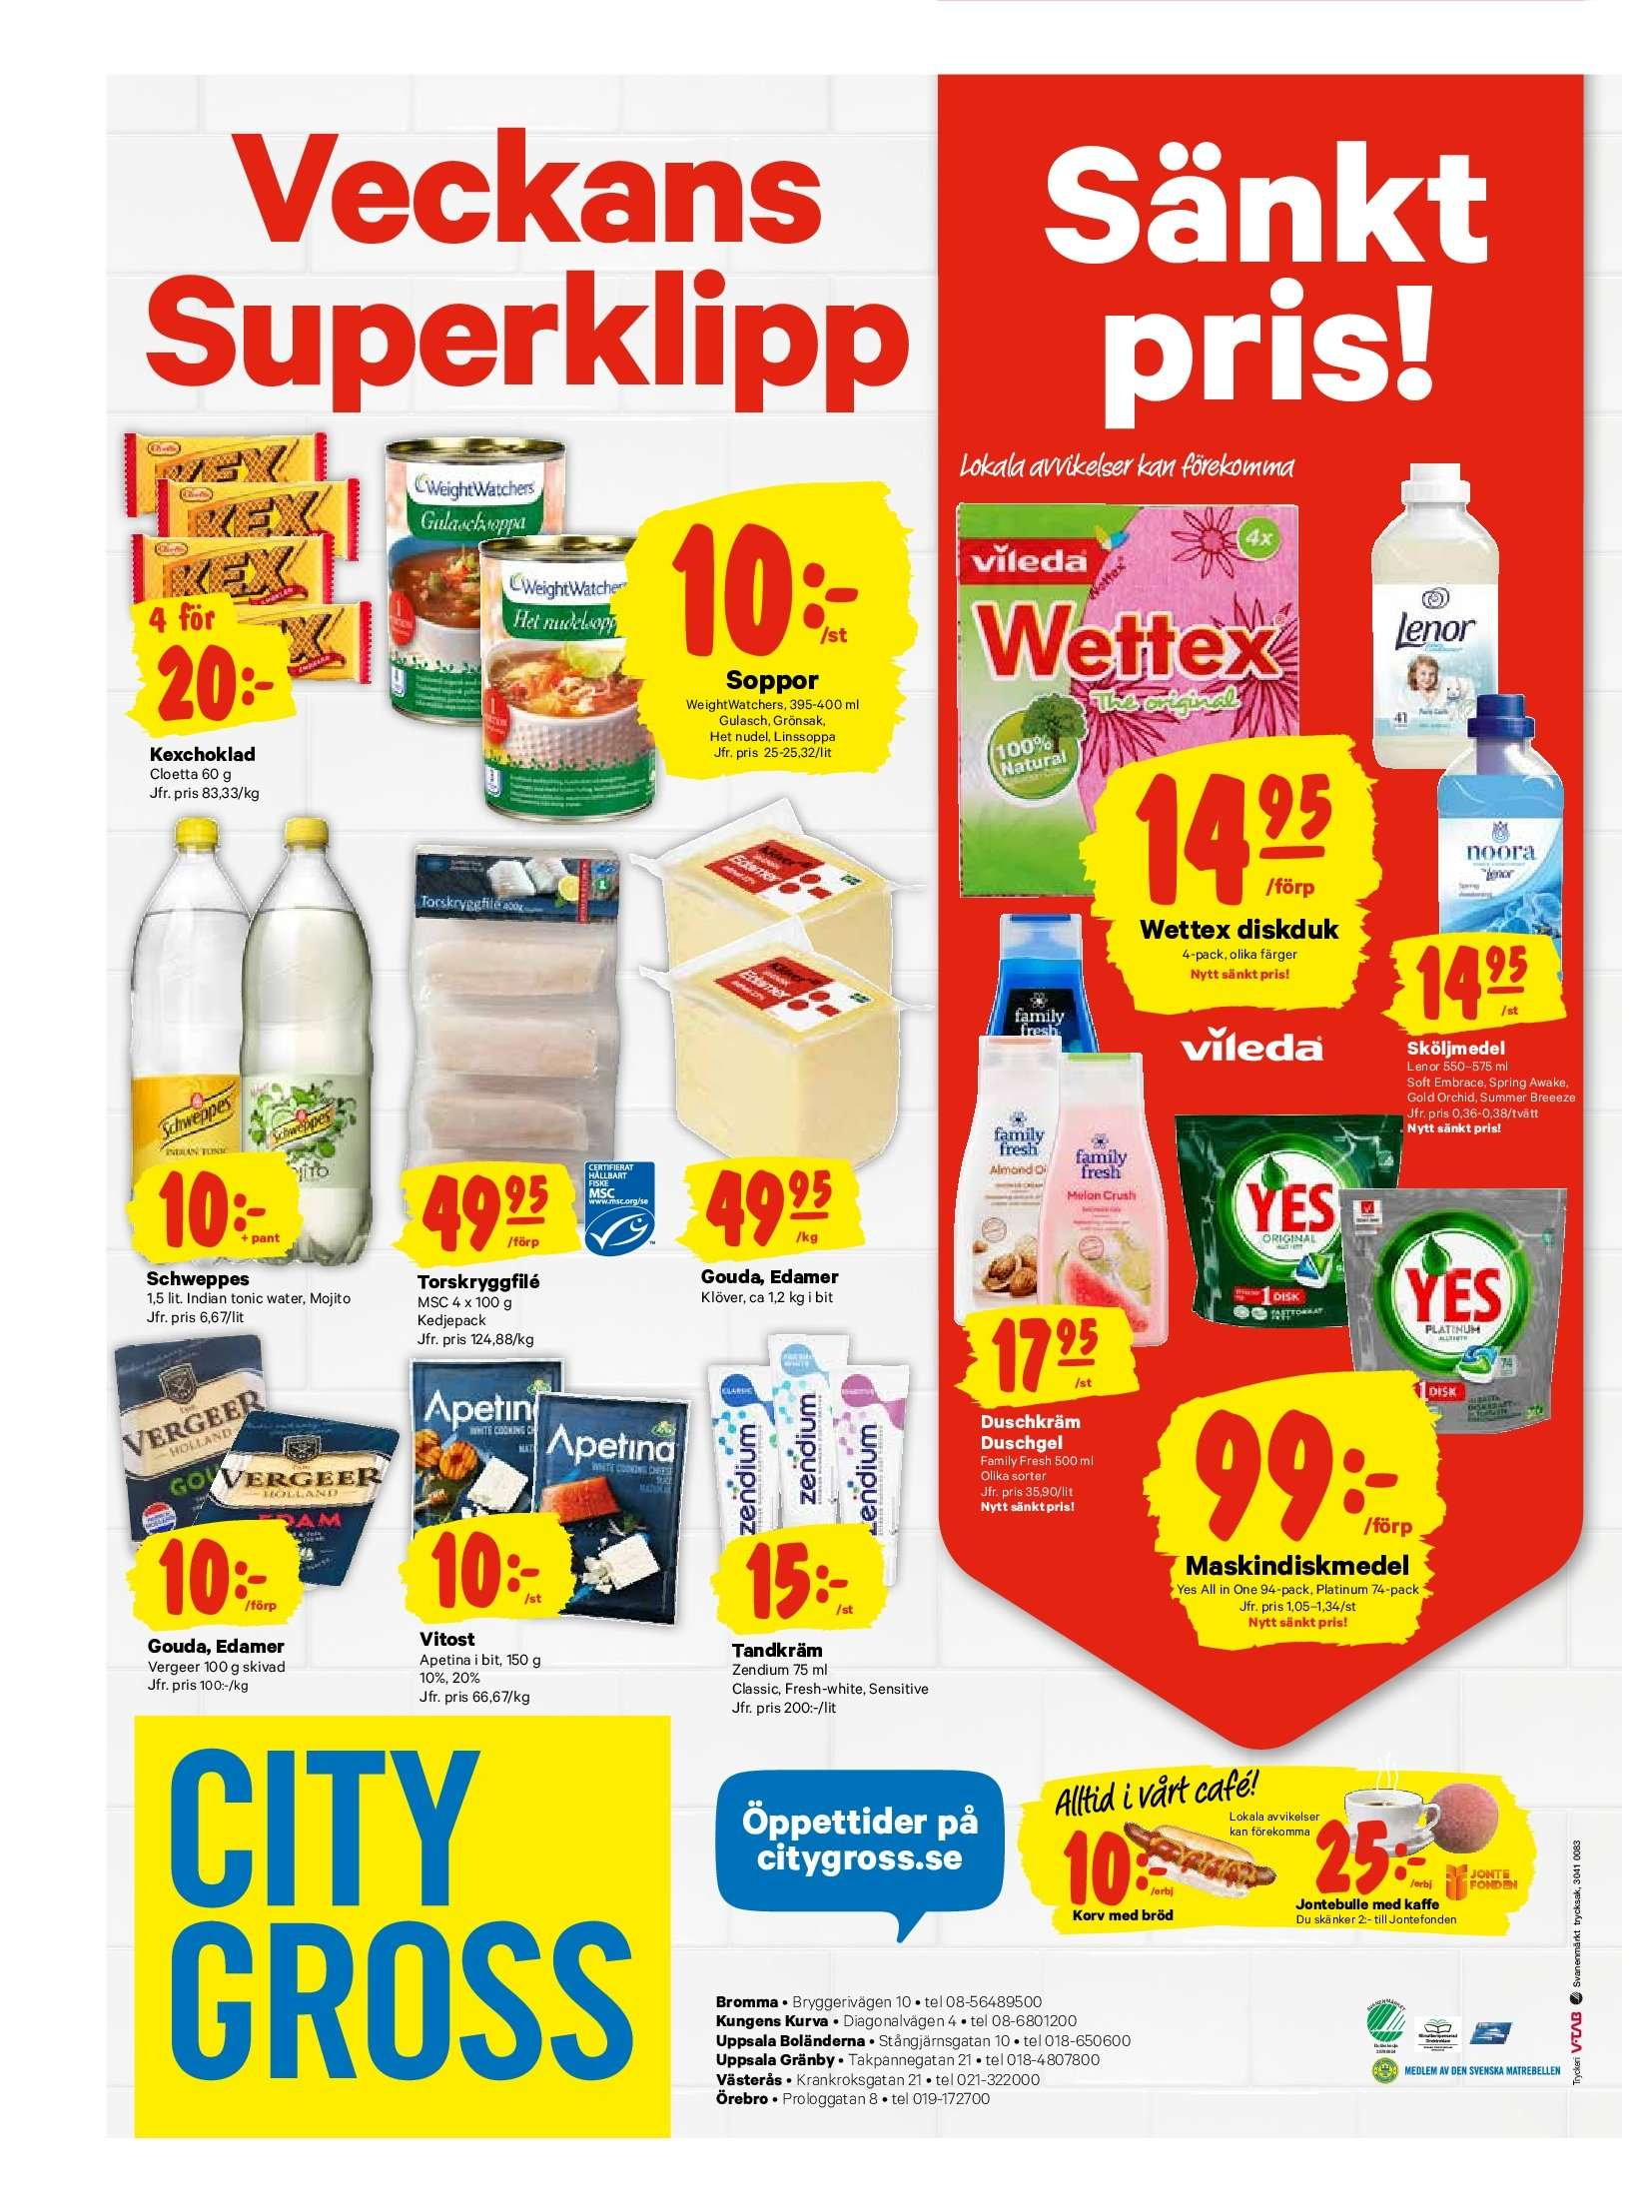 City Gross reklamblad - 10/9 2018 - 16/9 2018. Sida 24.